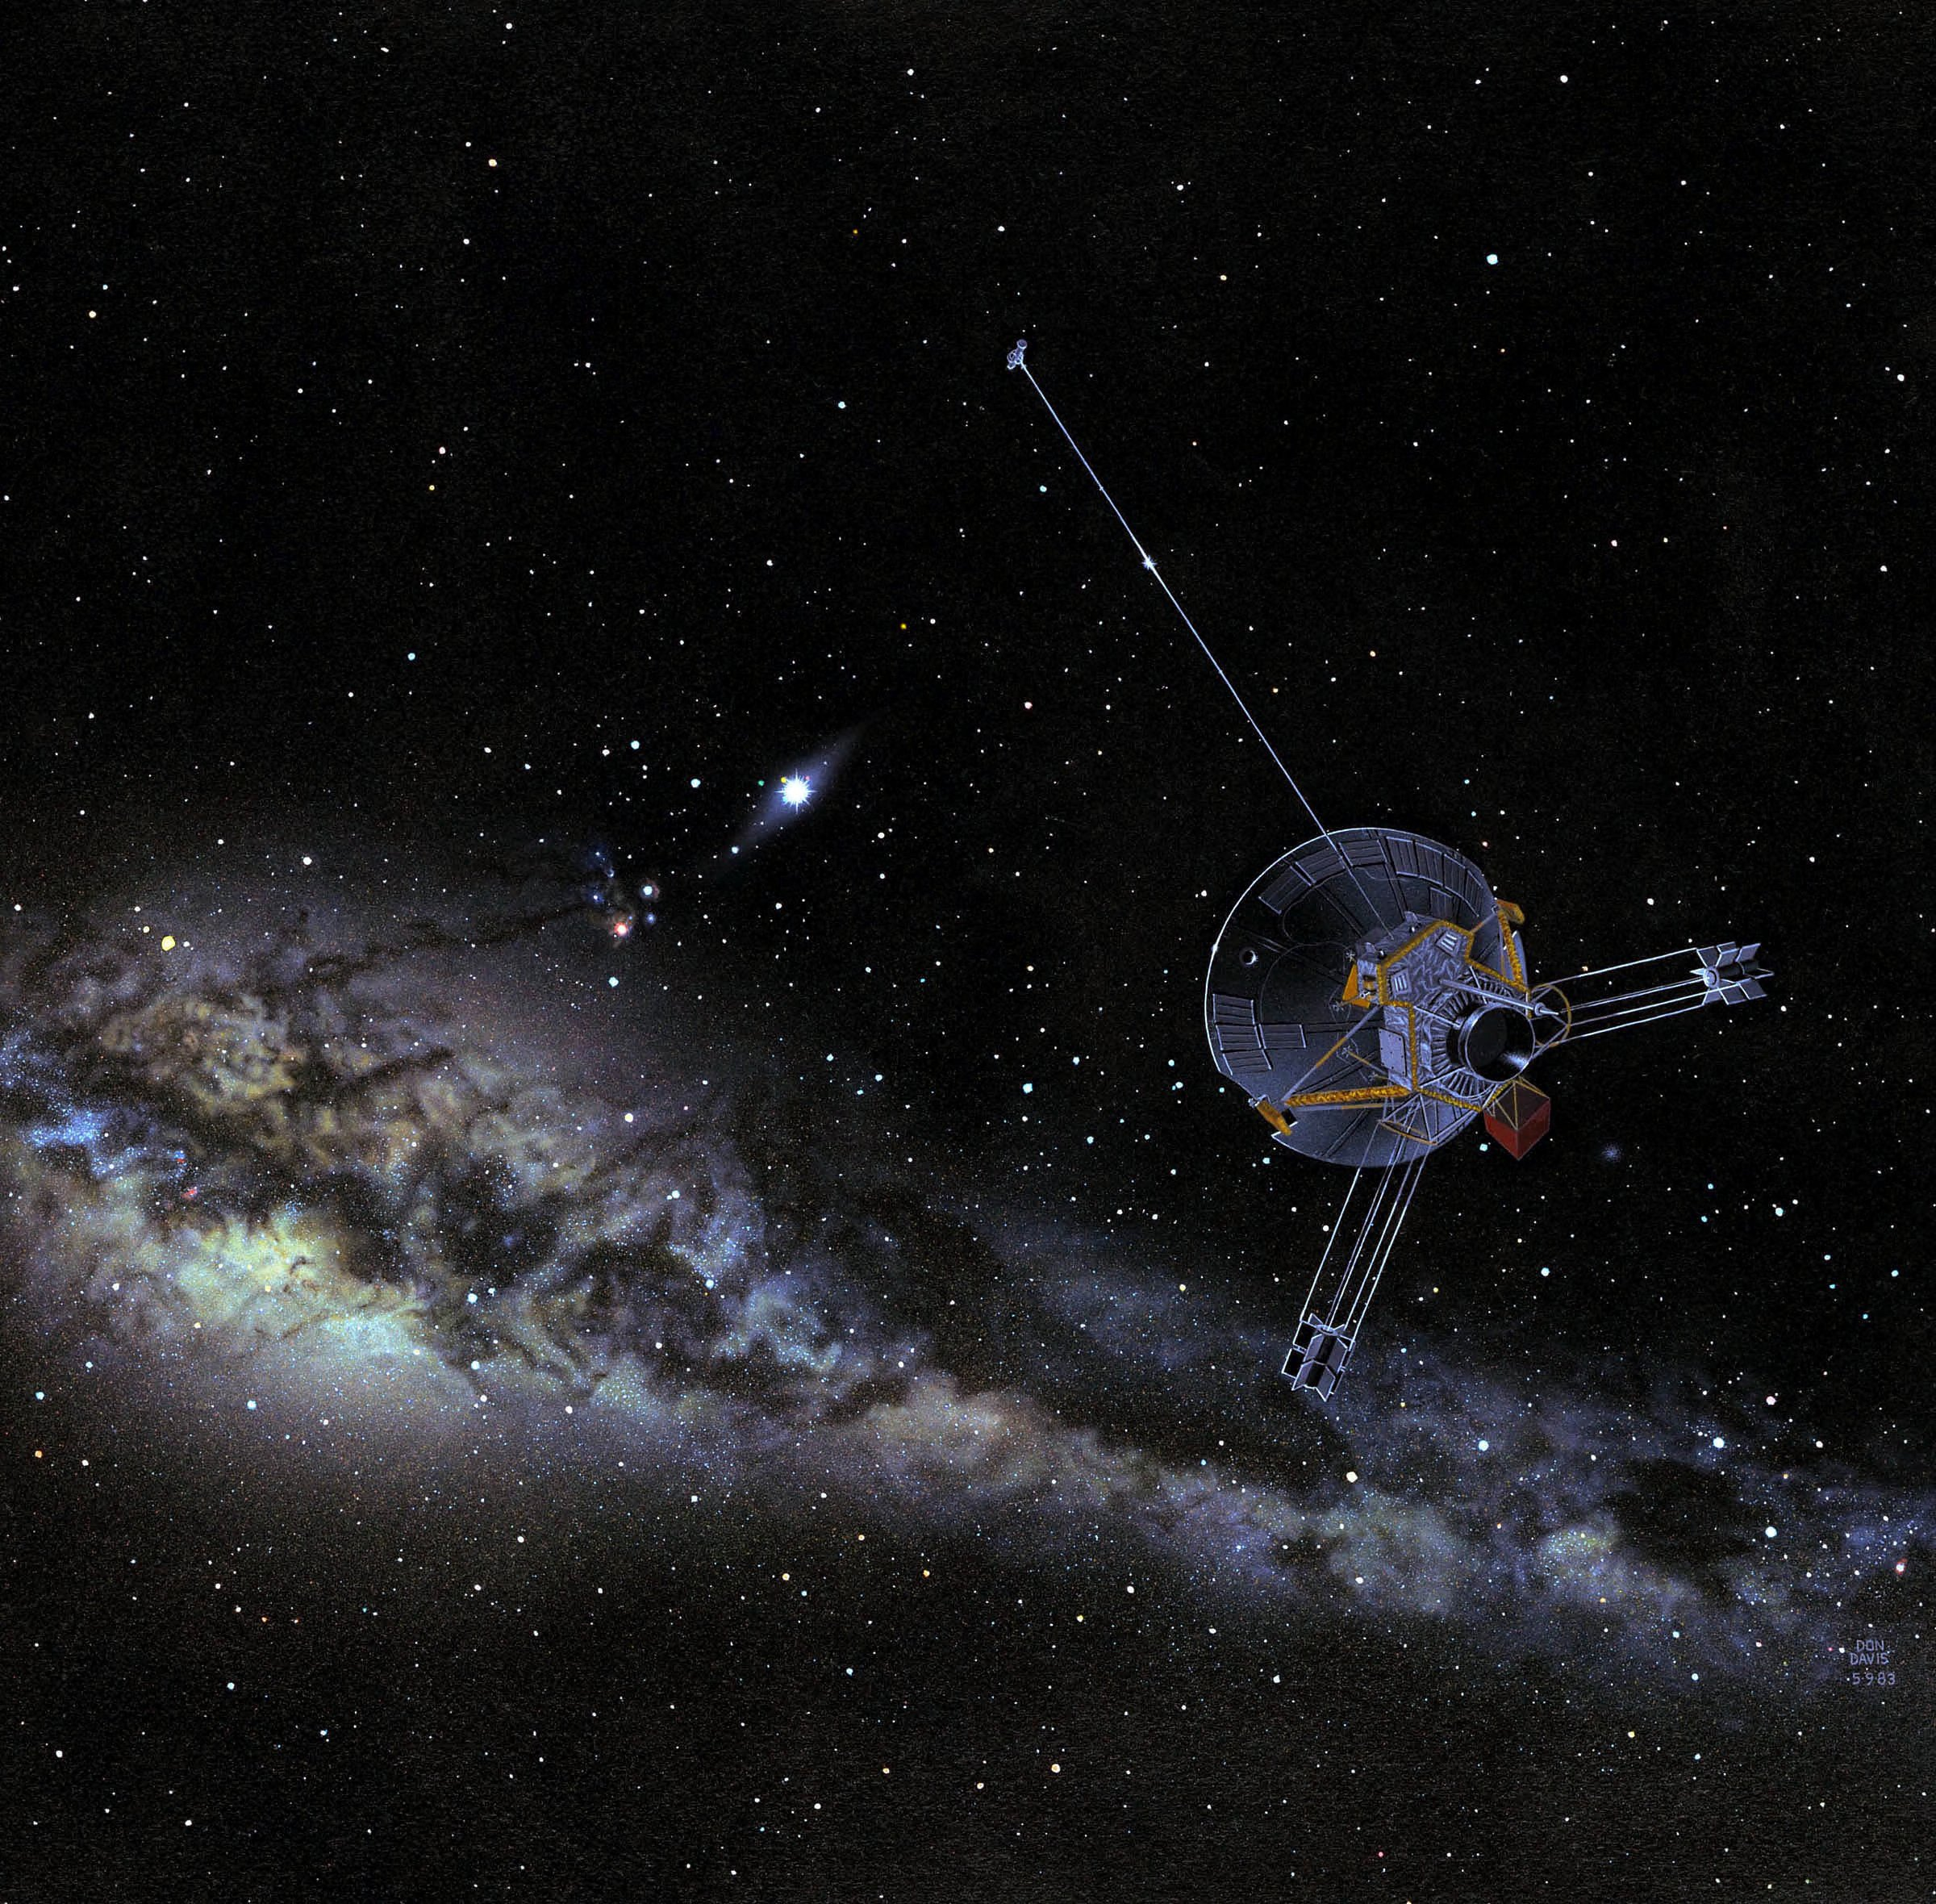 Illustration of spacecraft with Milky Way in the background.